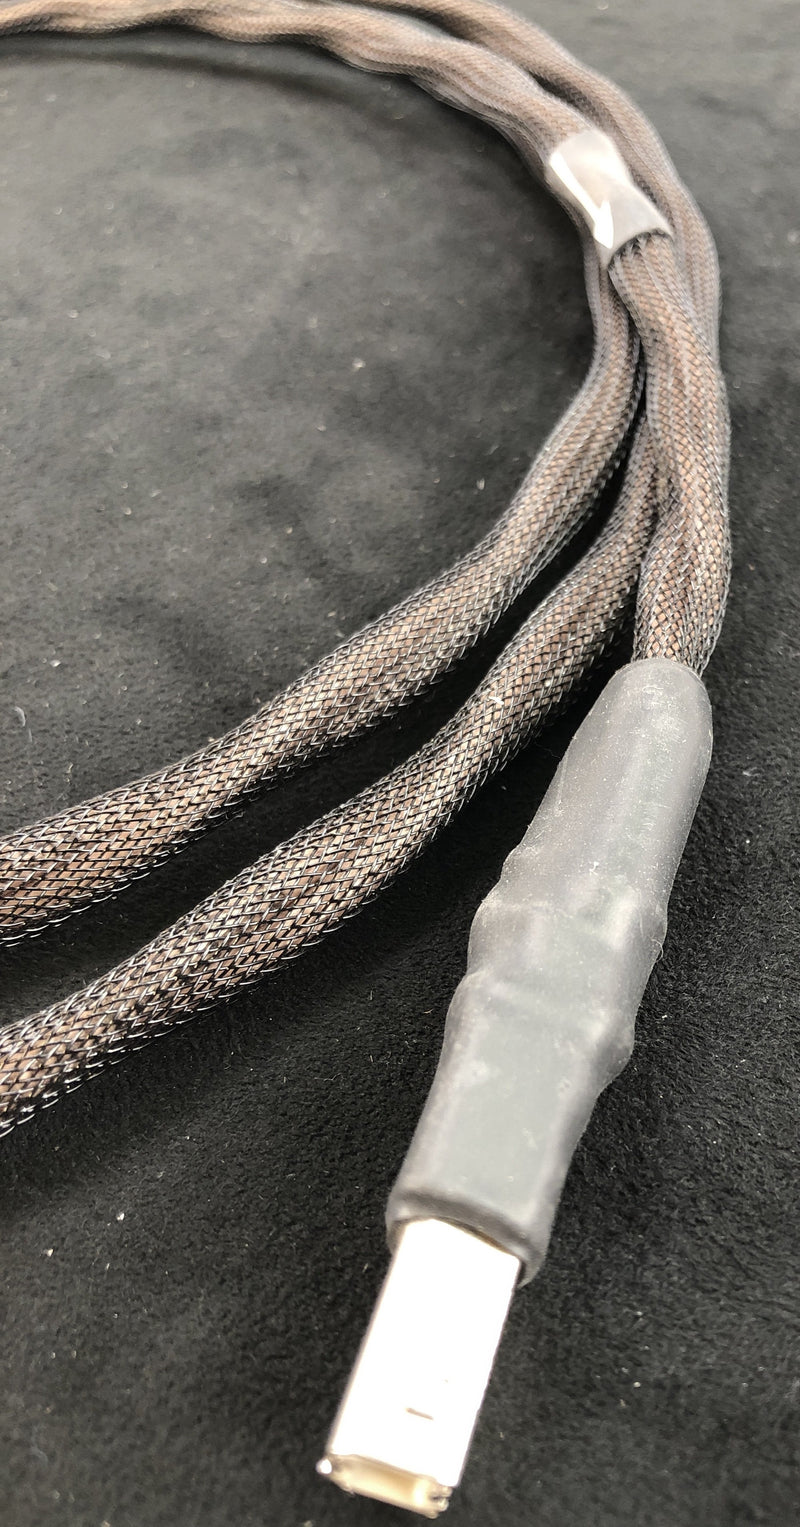 Synergistic Research - Tesla Tricon Digital USB Cable - 2M